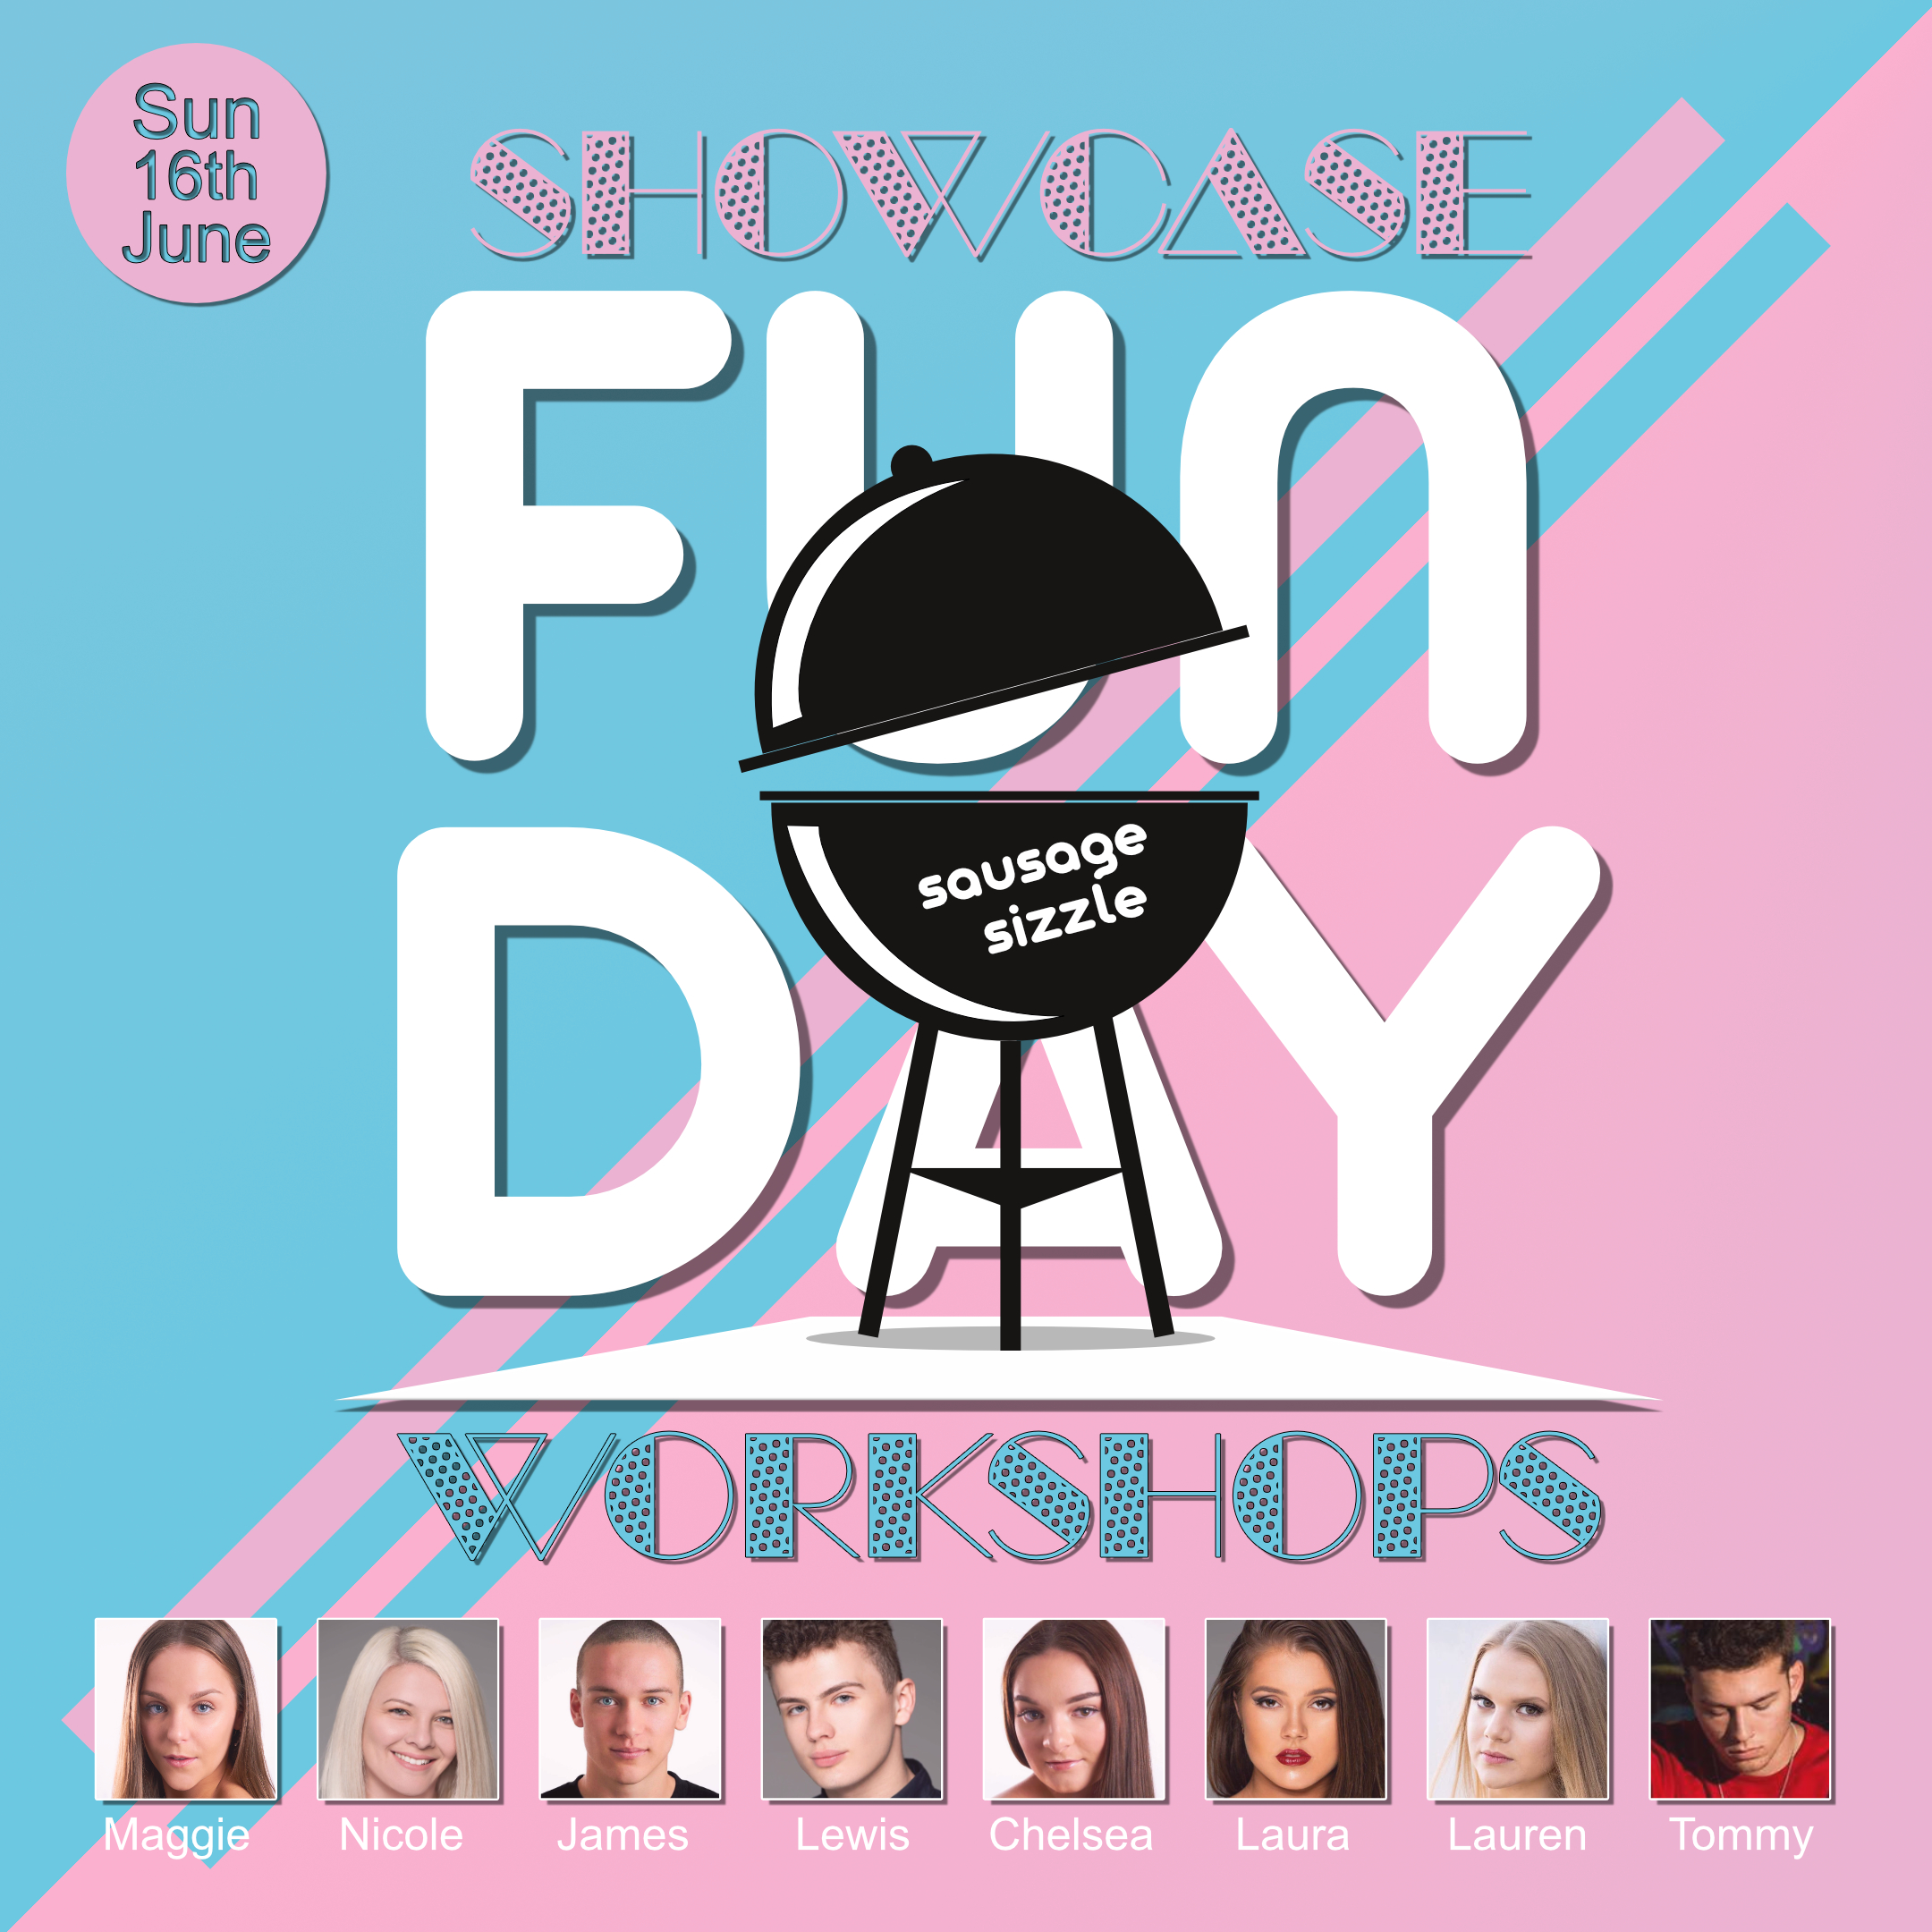 Sunday Funday Workshop & Solo Showcase